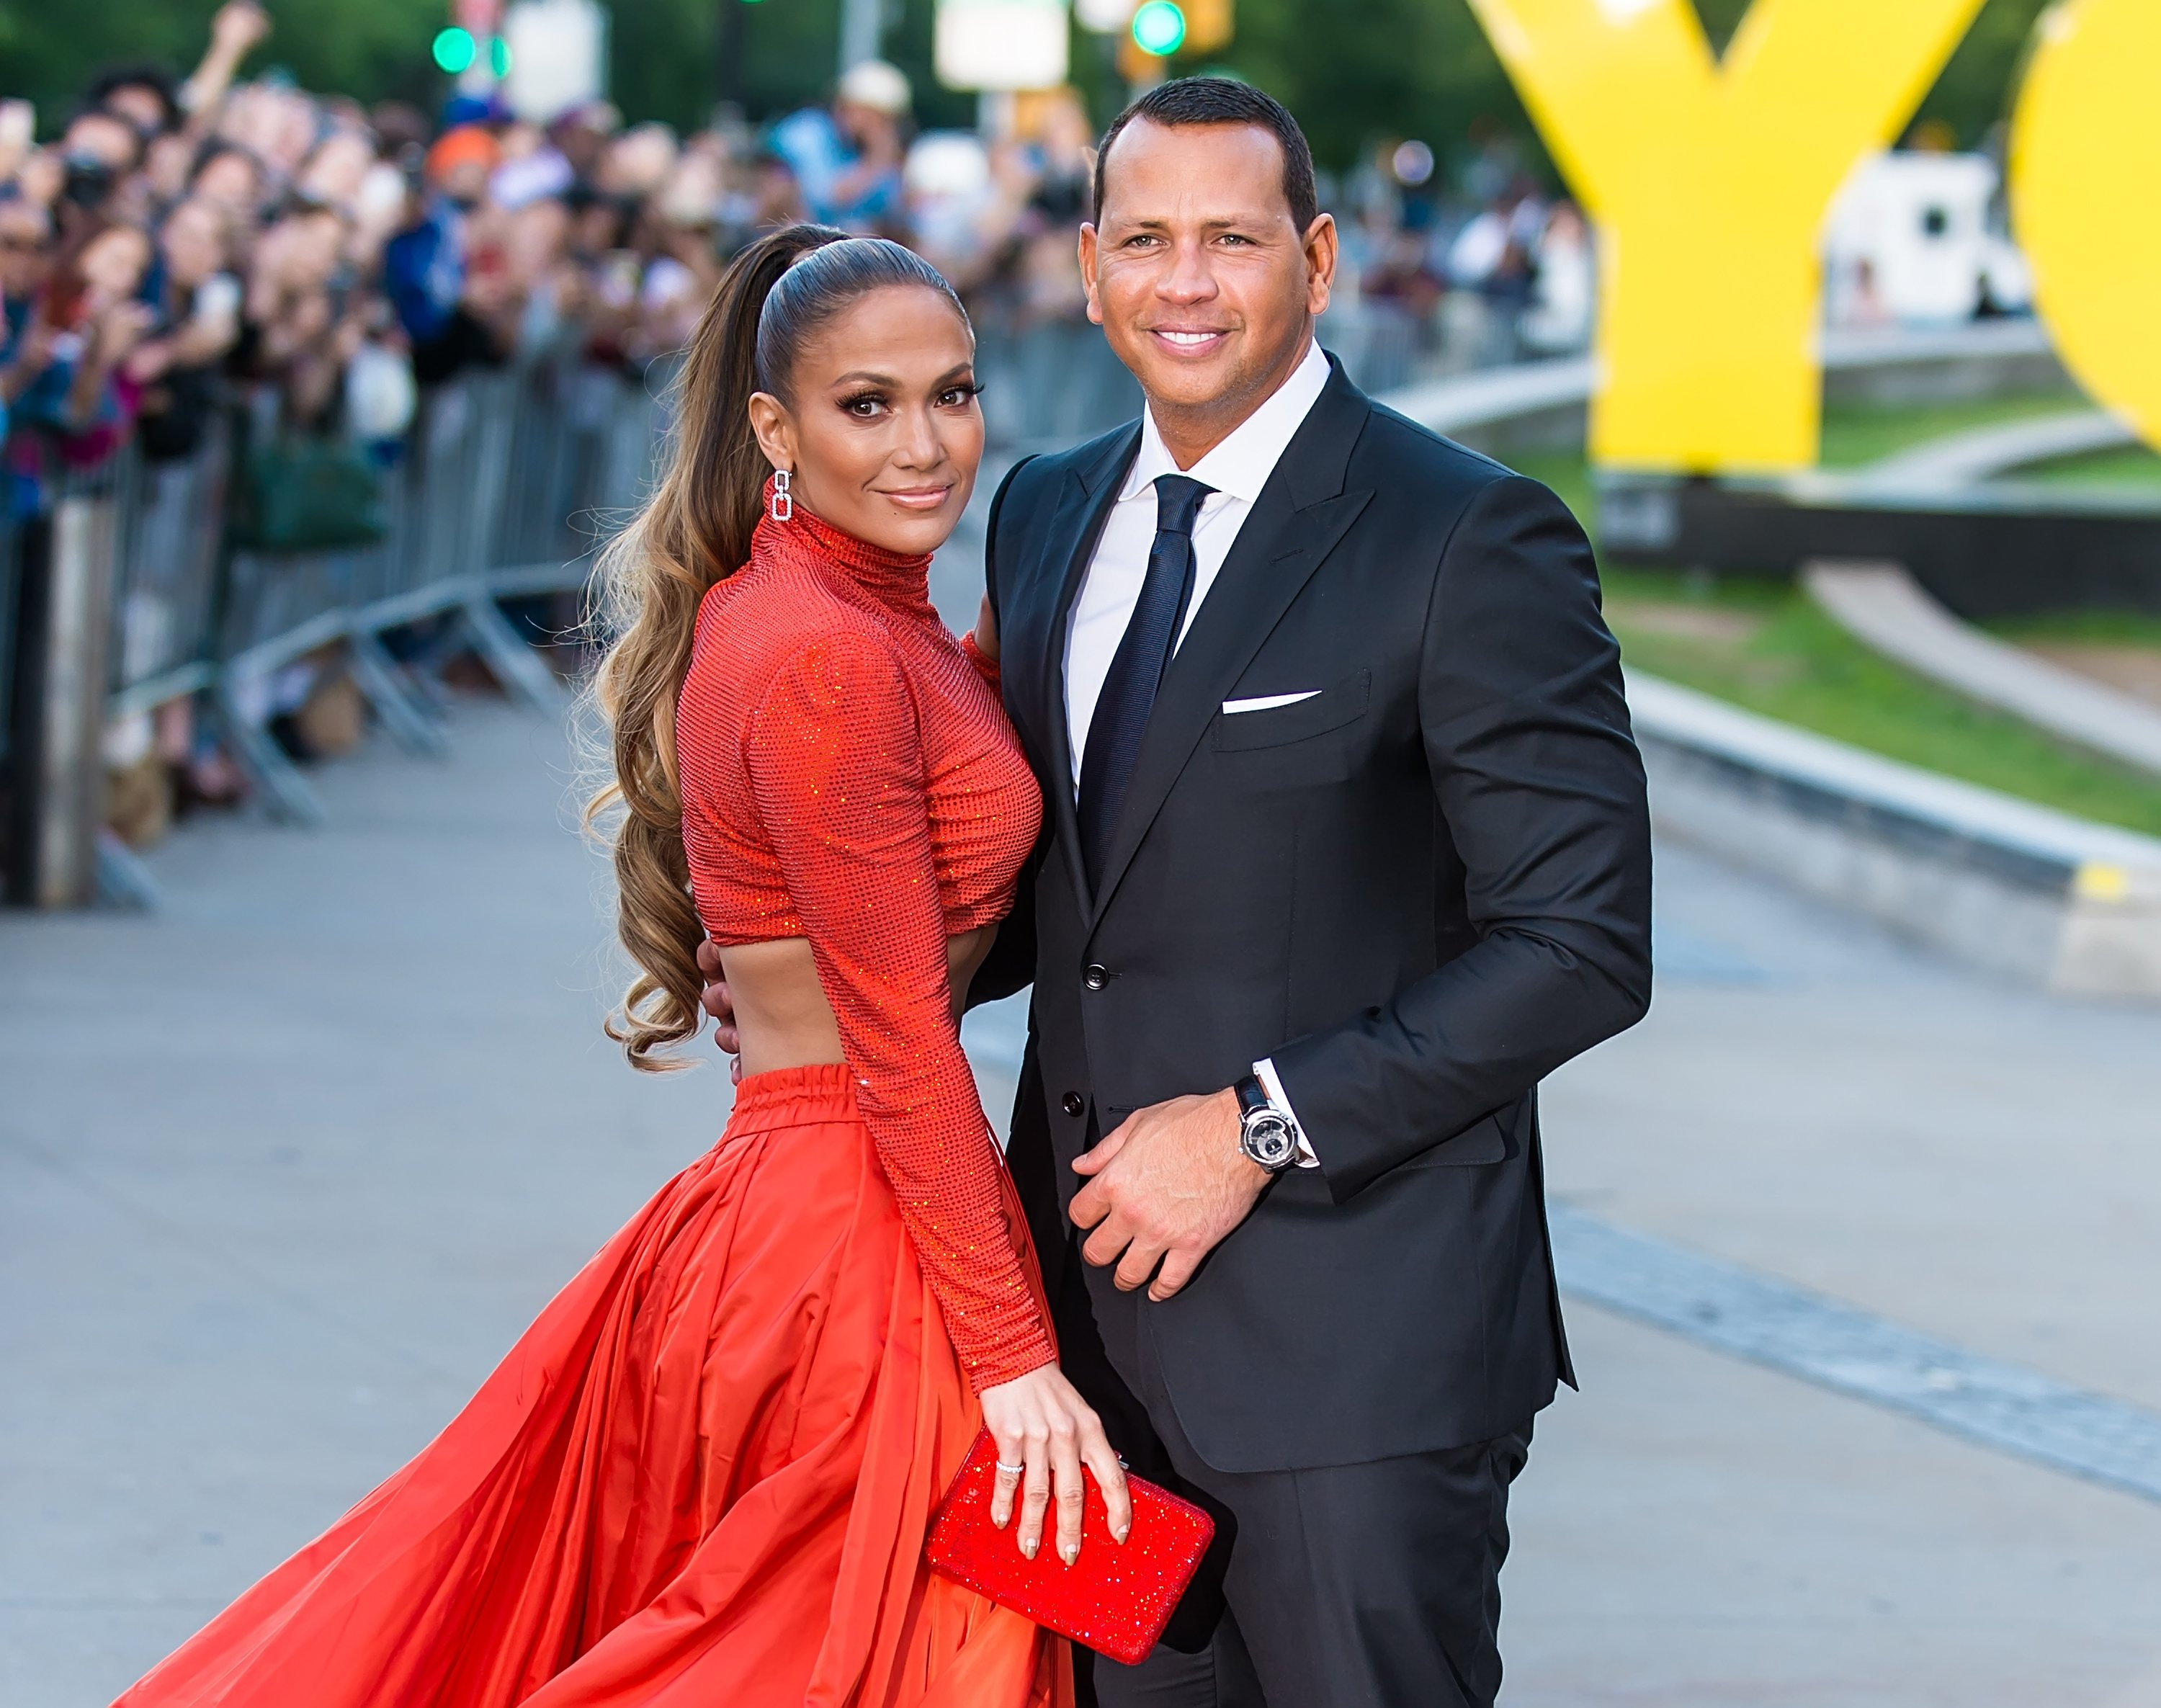 Jennifer Lopez and Alex Rodriguez are seen arriving to the 2019 CFDA Fashion Awards on June 3, 2019 in New York City | Photo: GettyImages